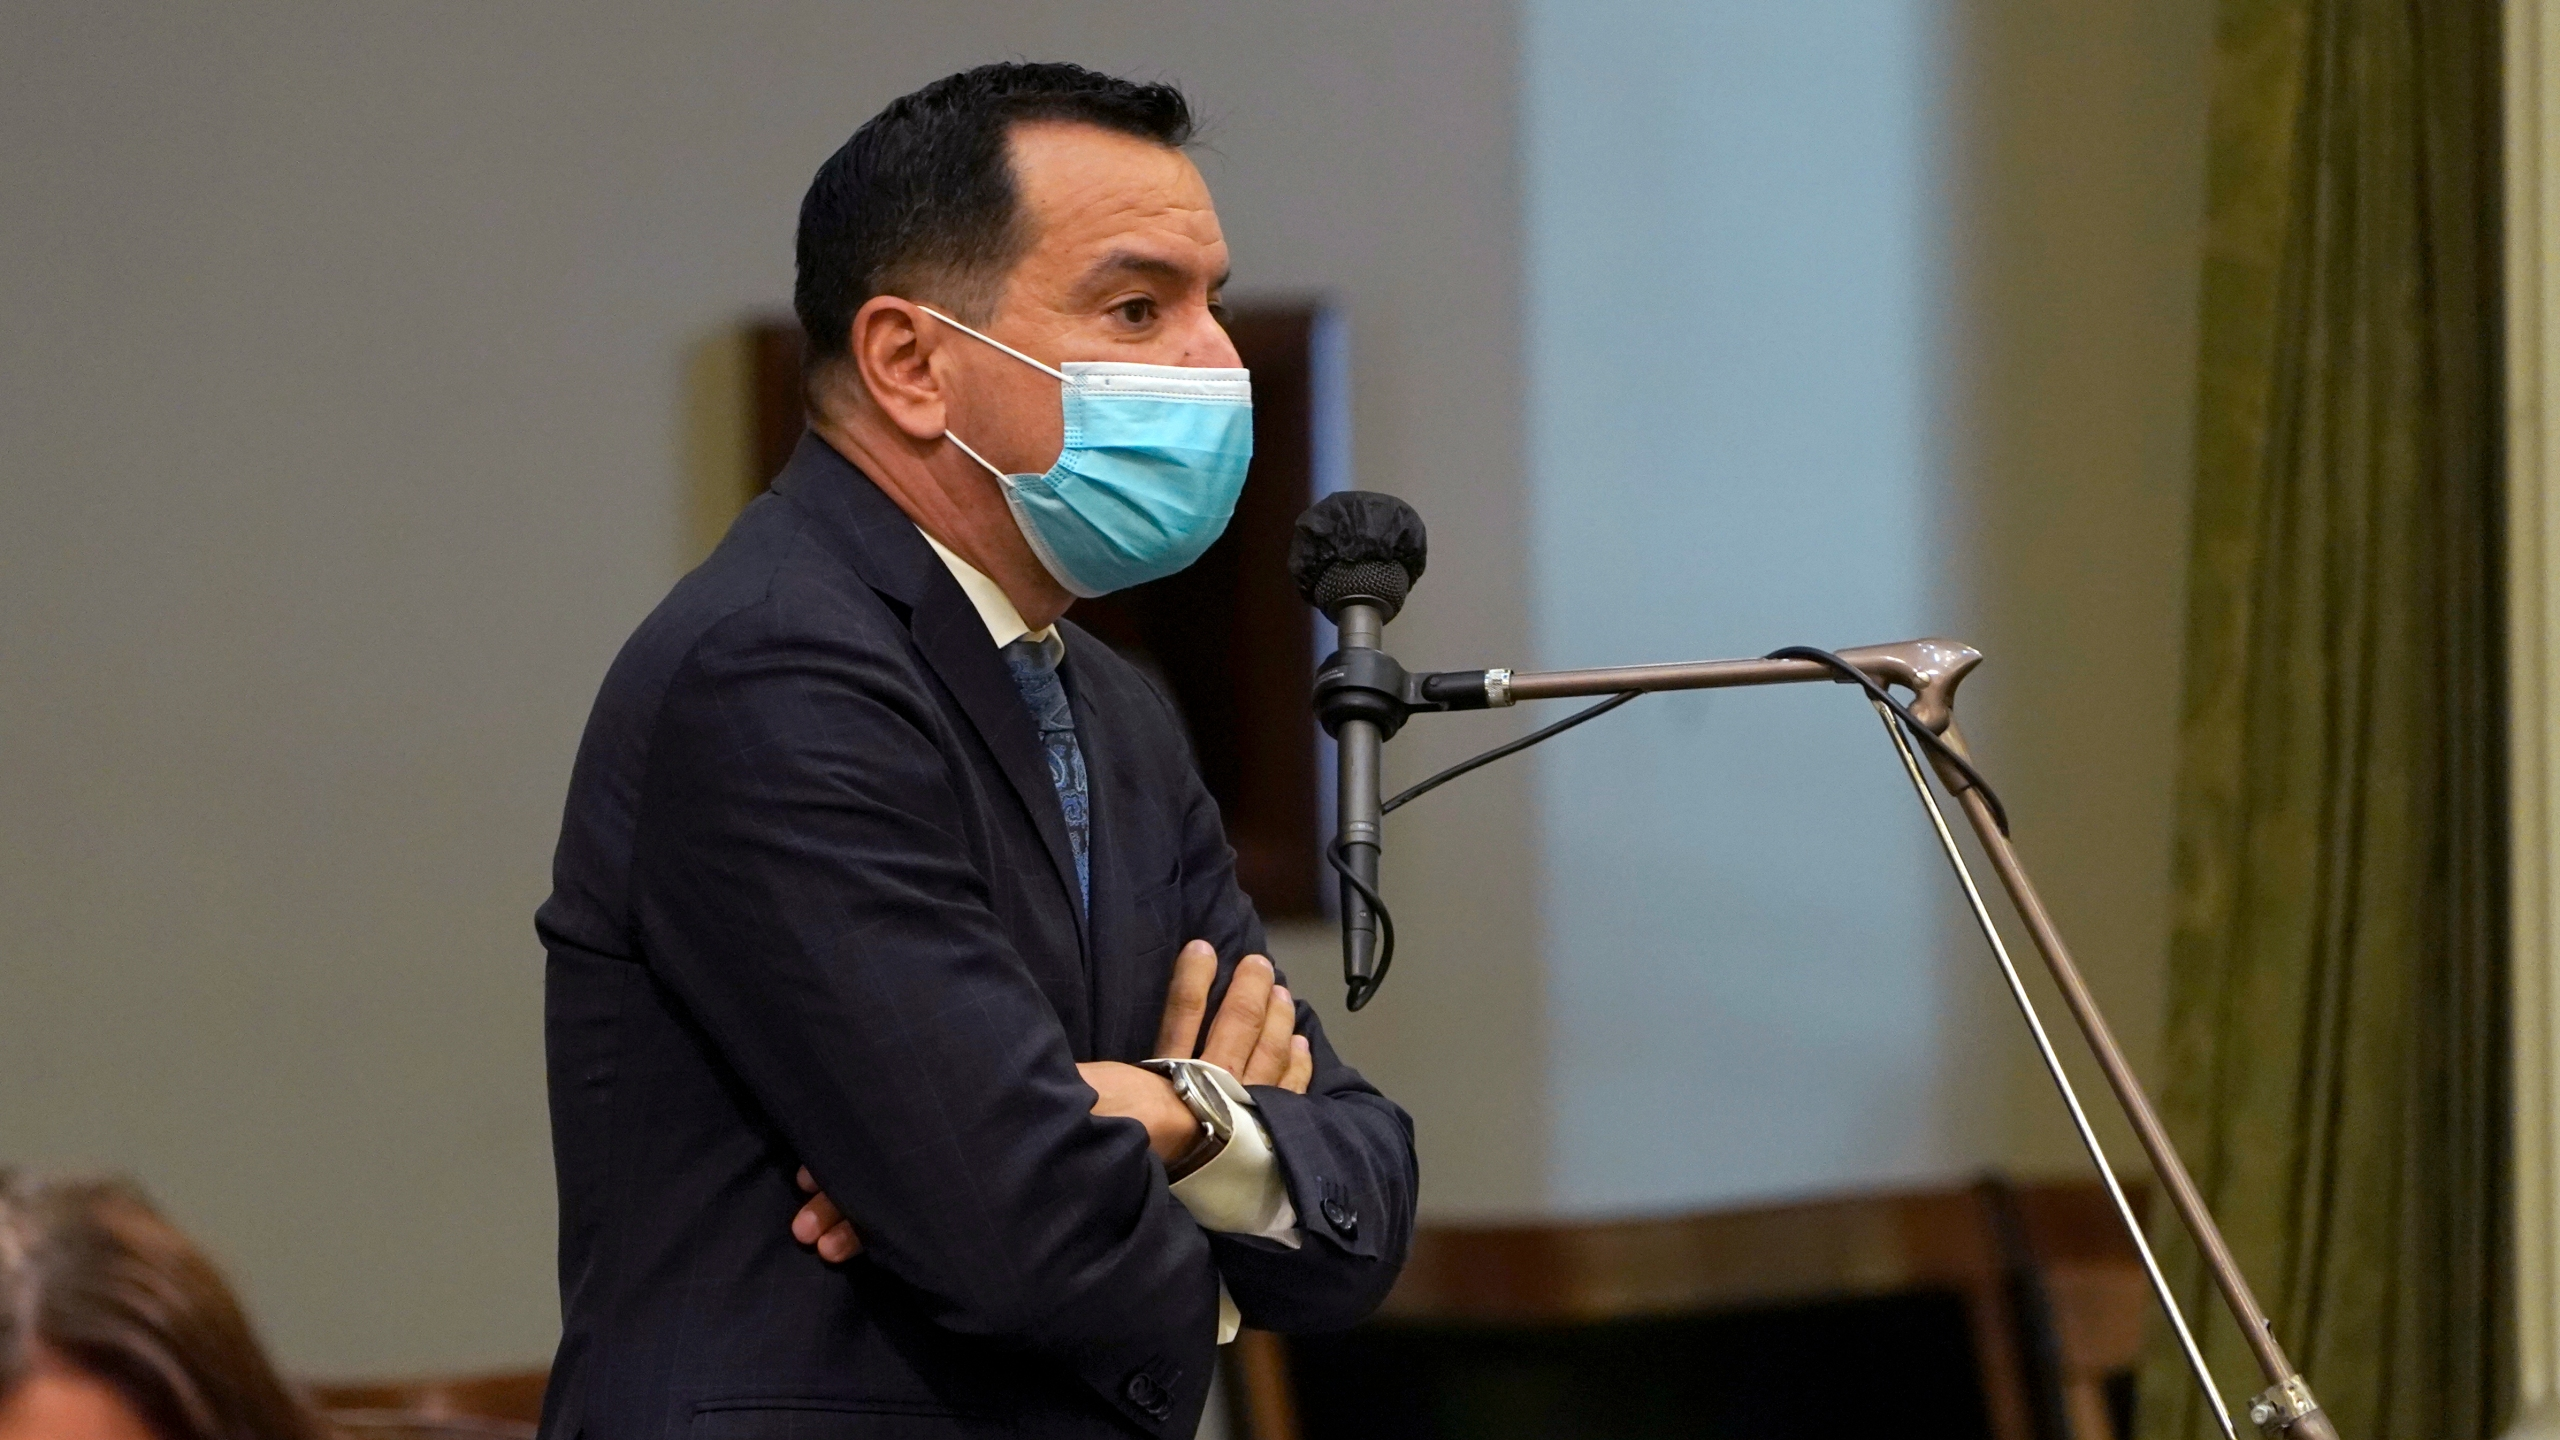 In this July 15, 2021, file photo, Assembly Speaker Anthony Rendon, D-Lakewood, wears a face mask as he addresses the Assembly in Sacramento. (Rich Pedroncelli/Associated Press)